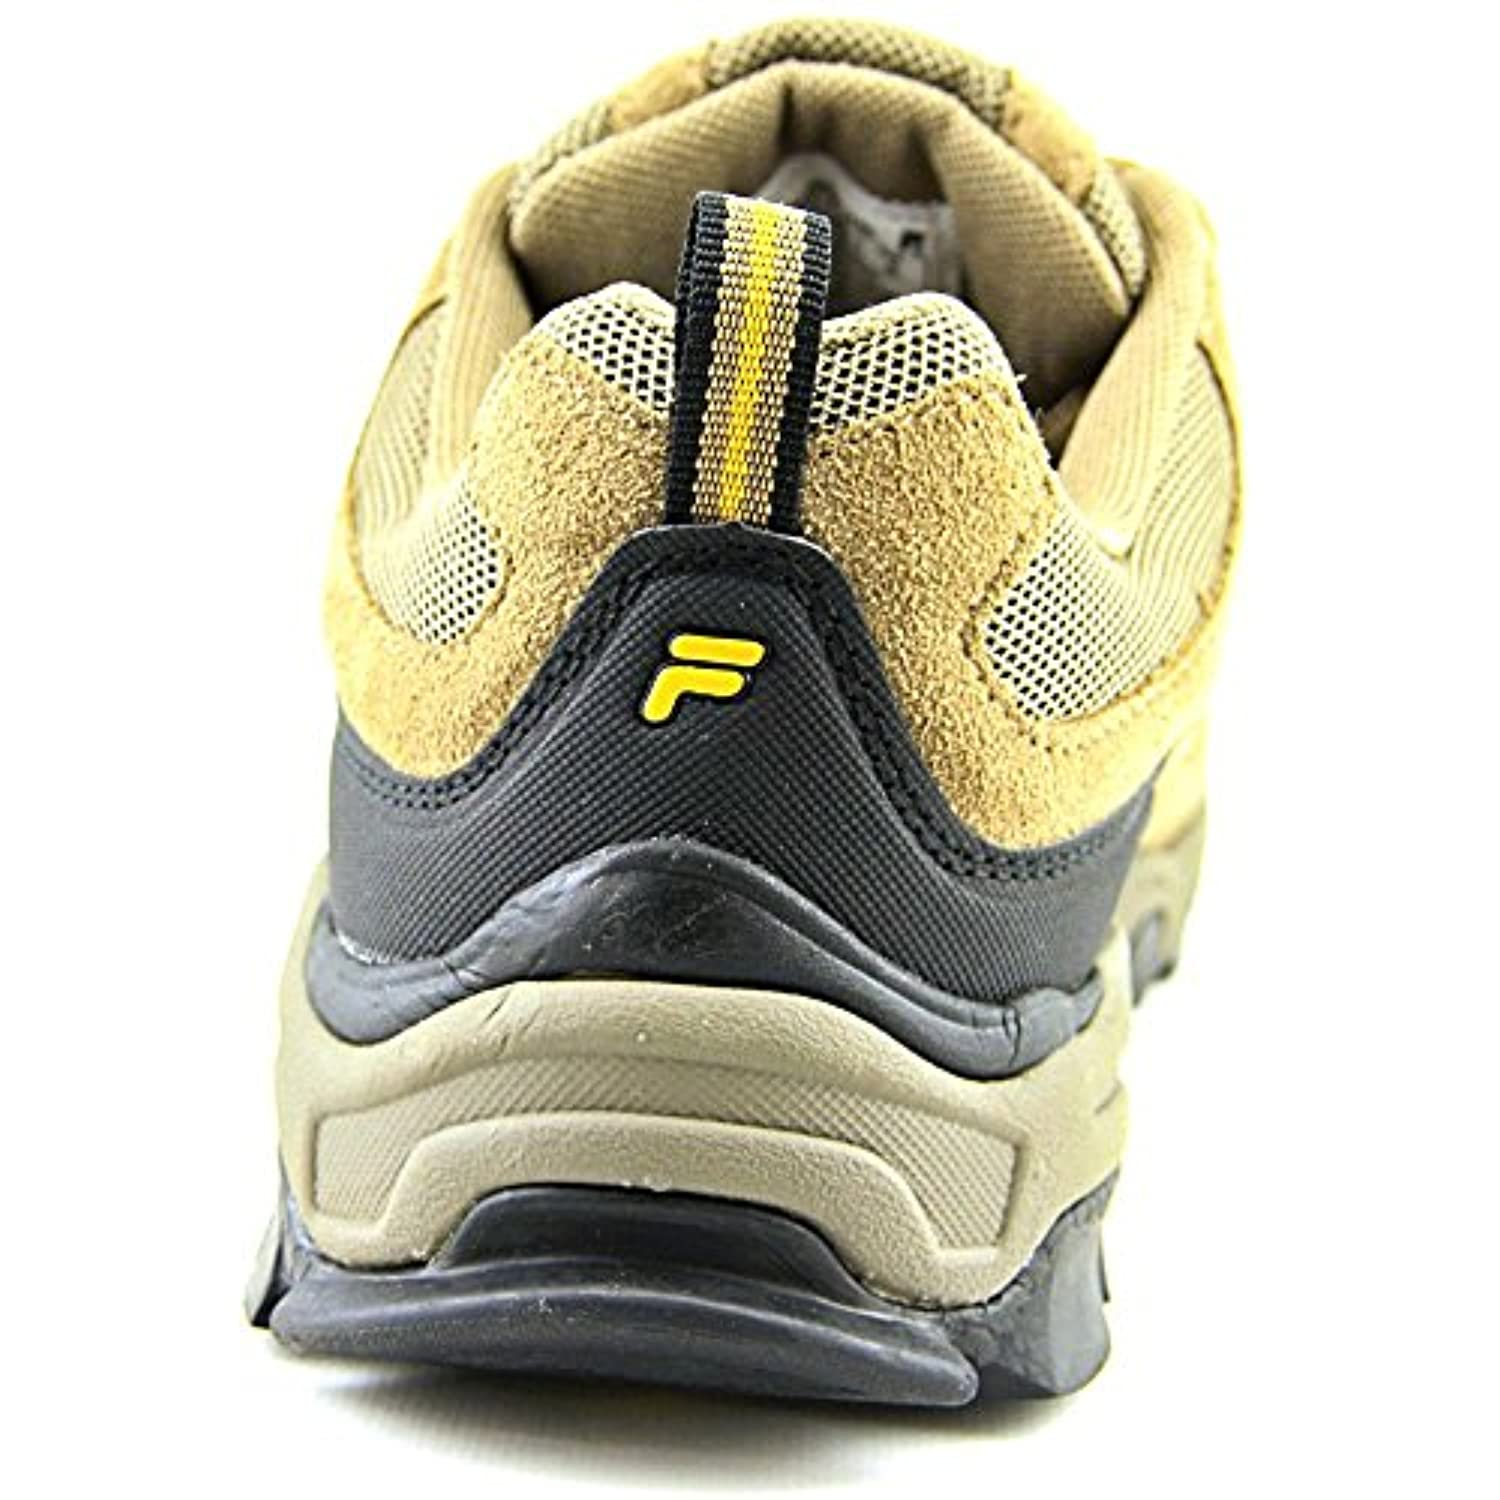 Fila Travail Mens Size 12 Brown Suede Trail Running Shoes $ 150 Kjøp i dag!  $150 Buy today!